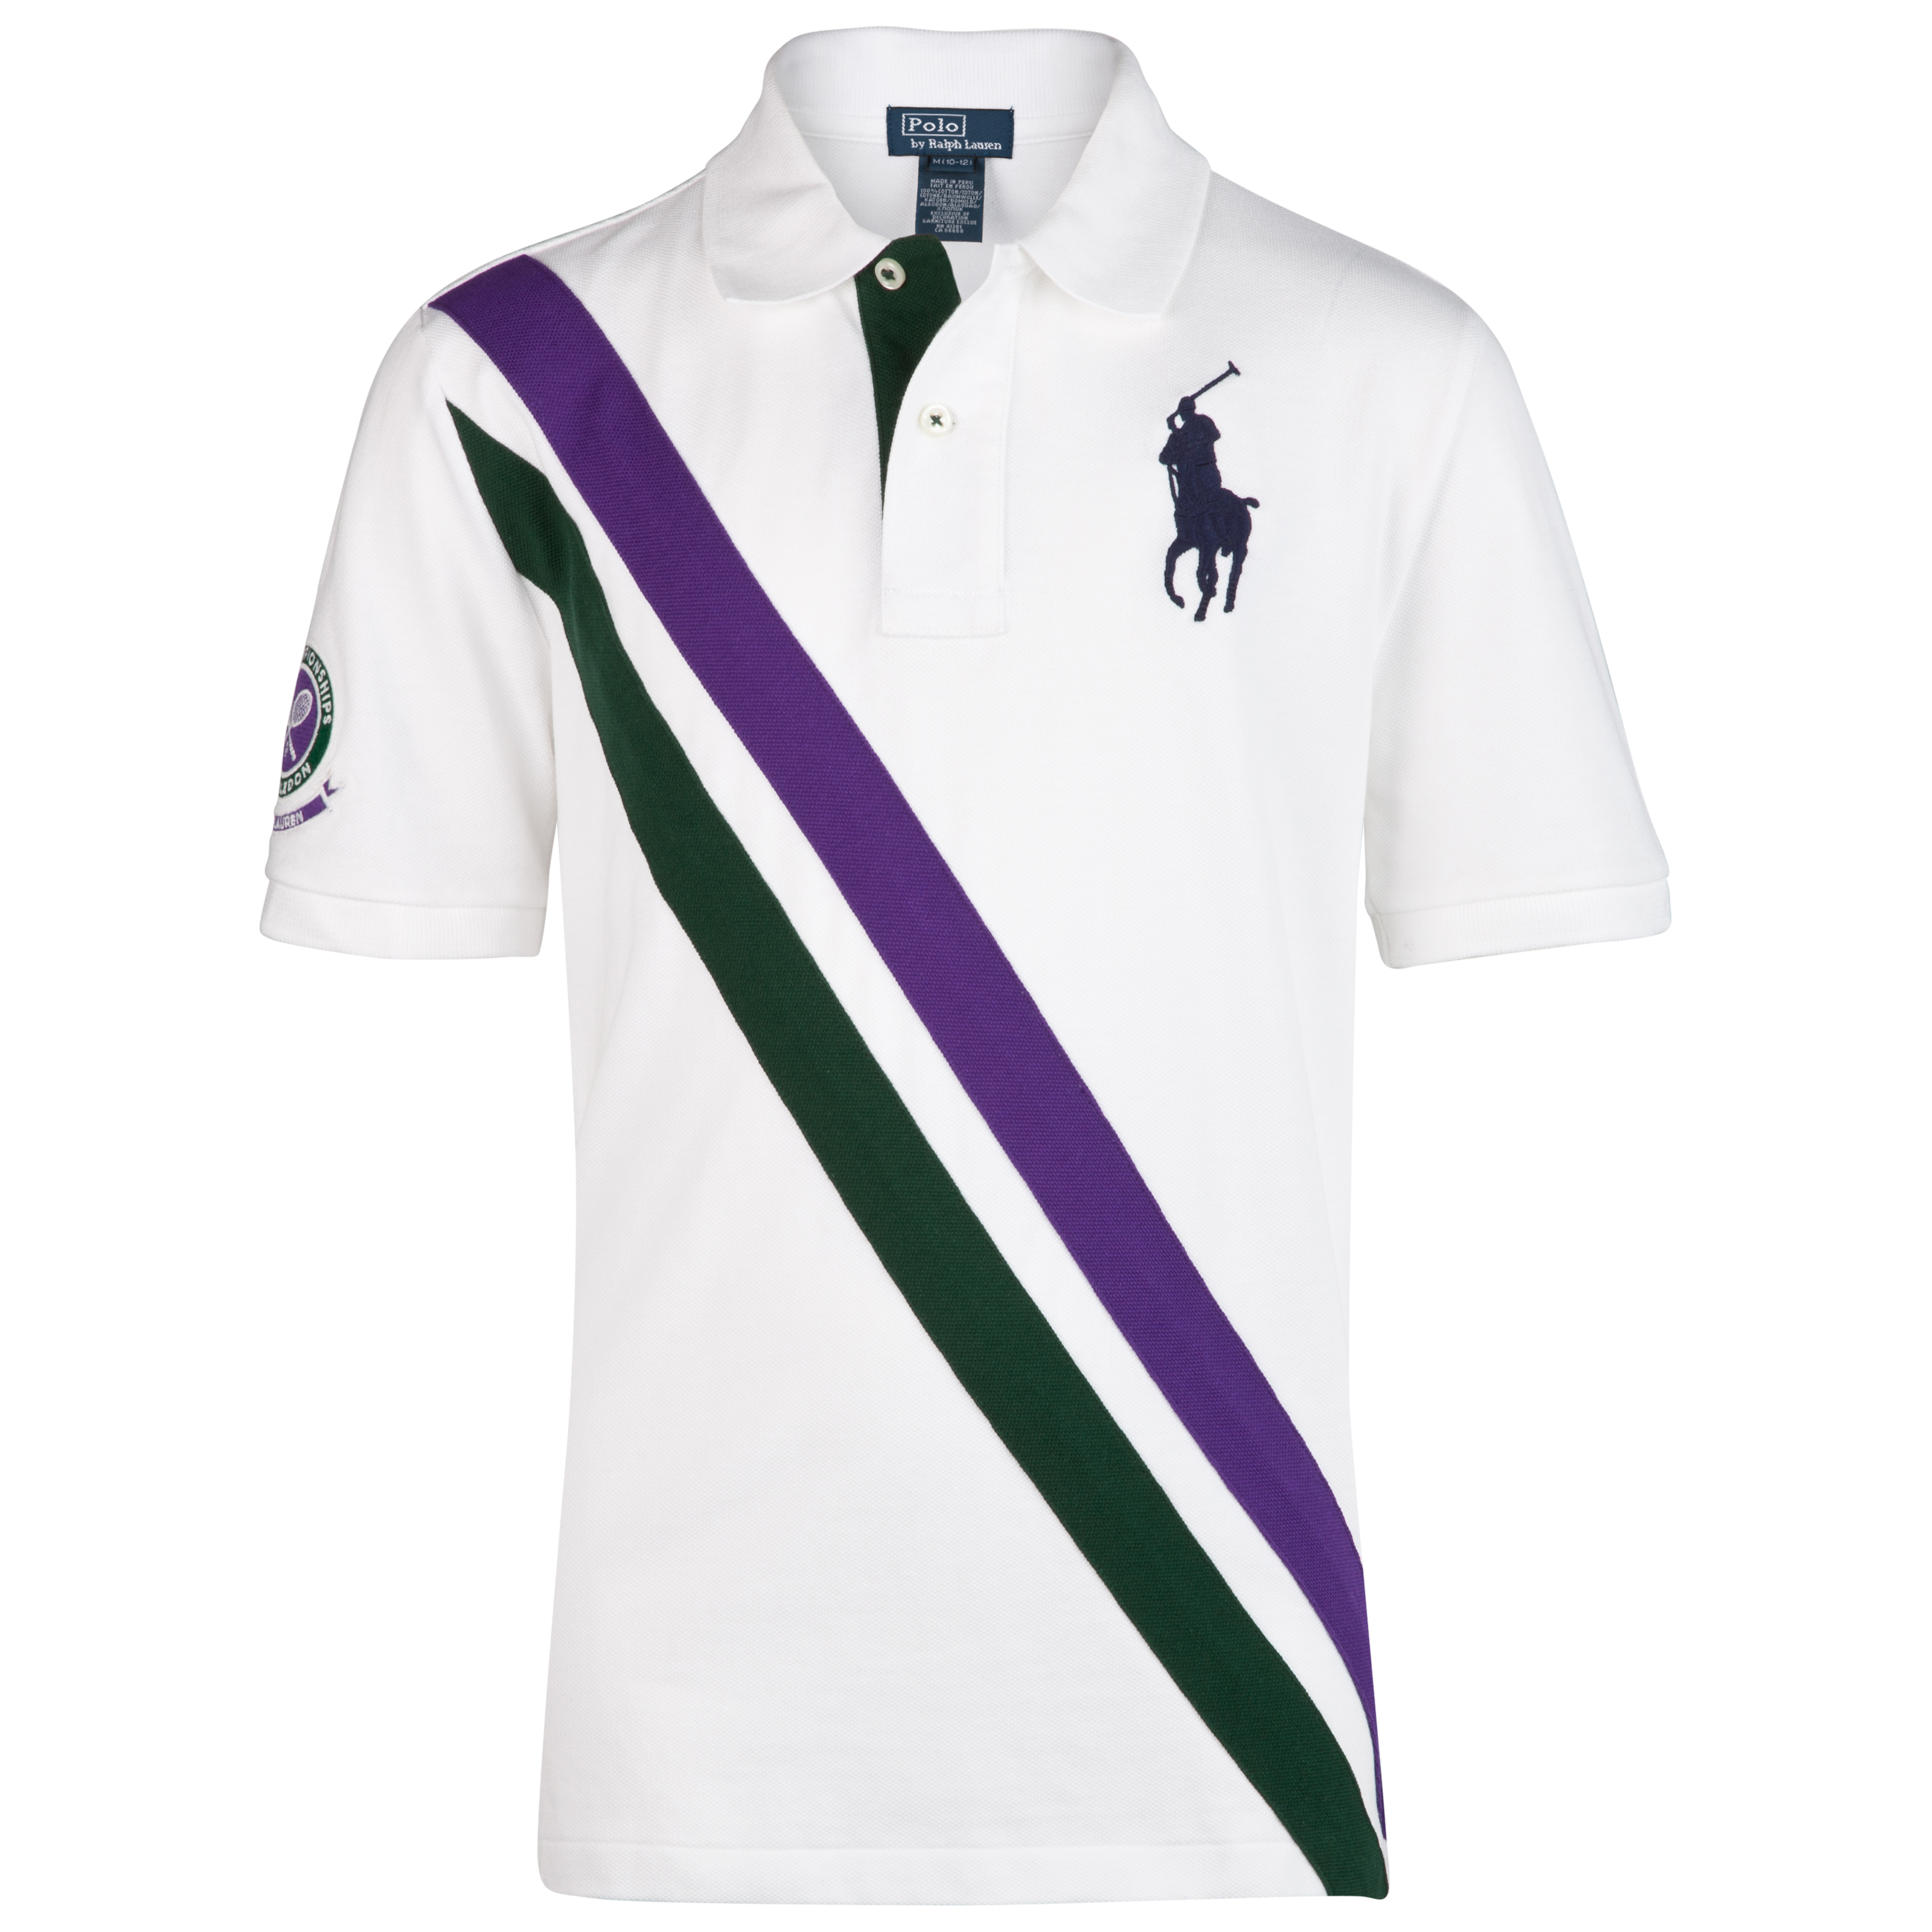 Polo Ralph Lauren Wimbledon Banner Mesh  Polo - Classic Oxford White - Infant Girls